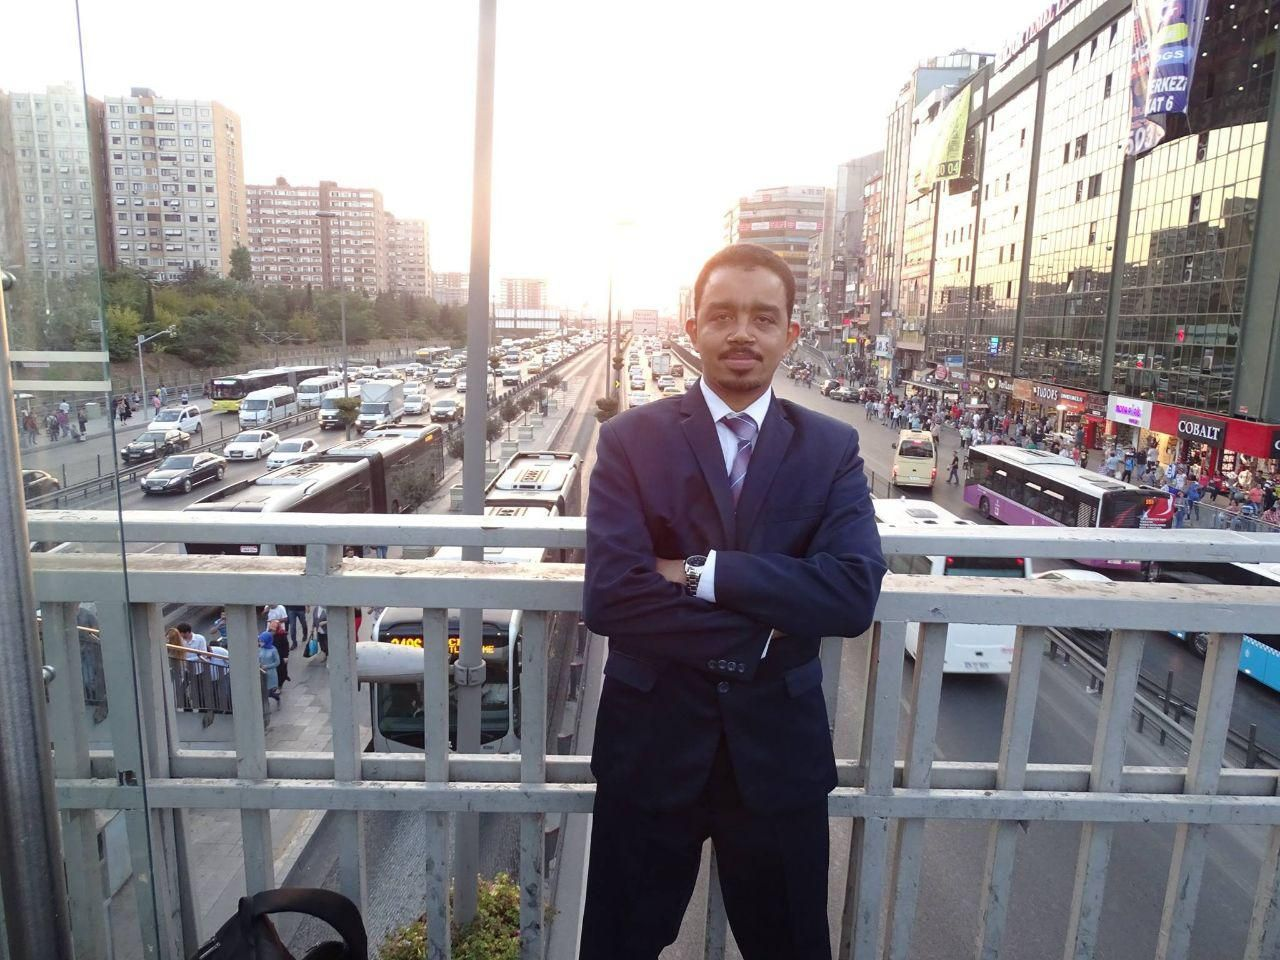 In conversation with Mohamed Elzakey of Sudan's Tirhal